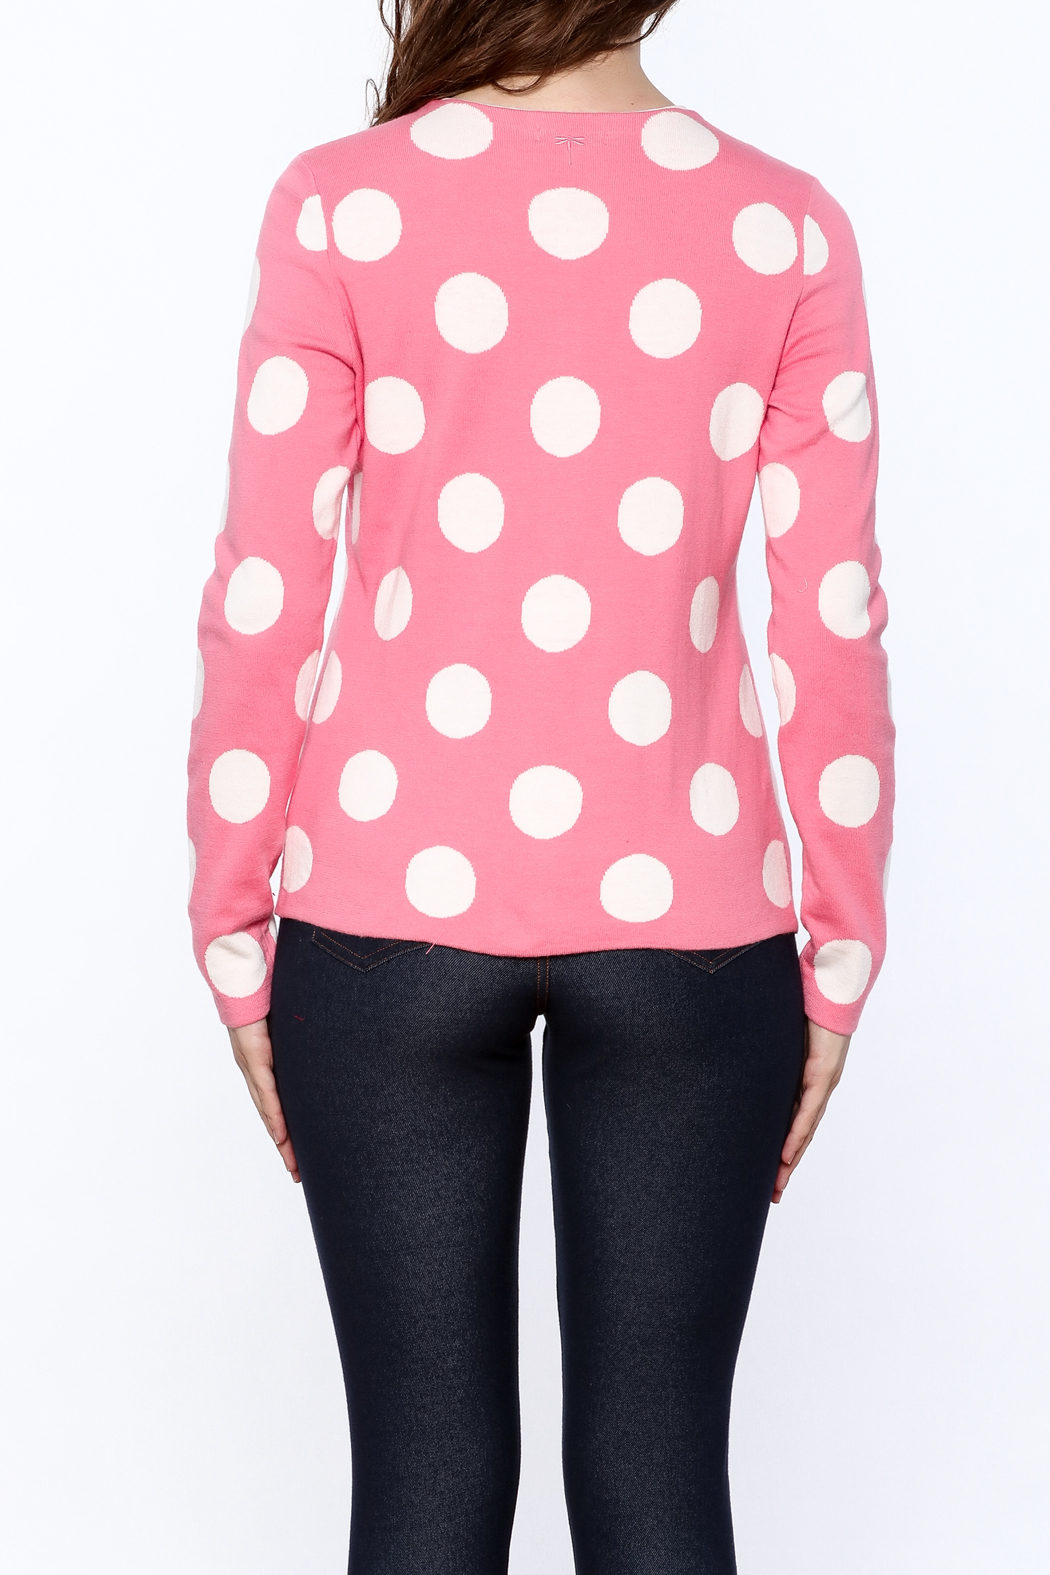 Tyler Boe Pink Button Down Cardigan - Back Cropped Image